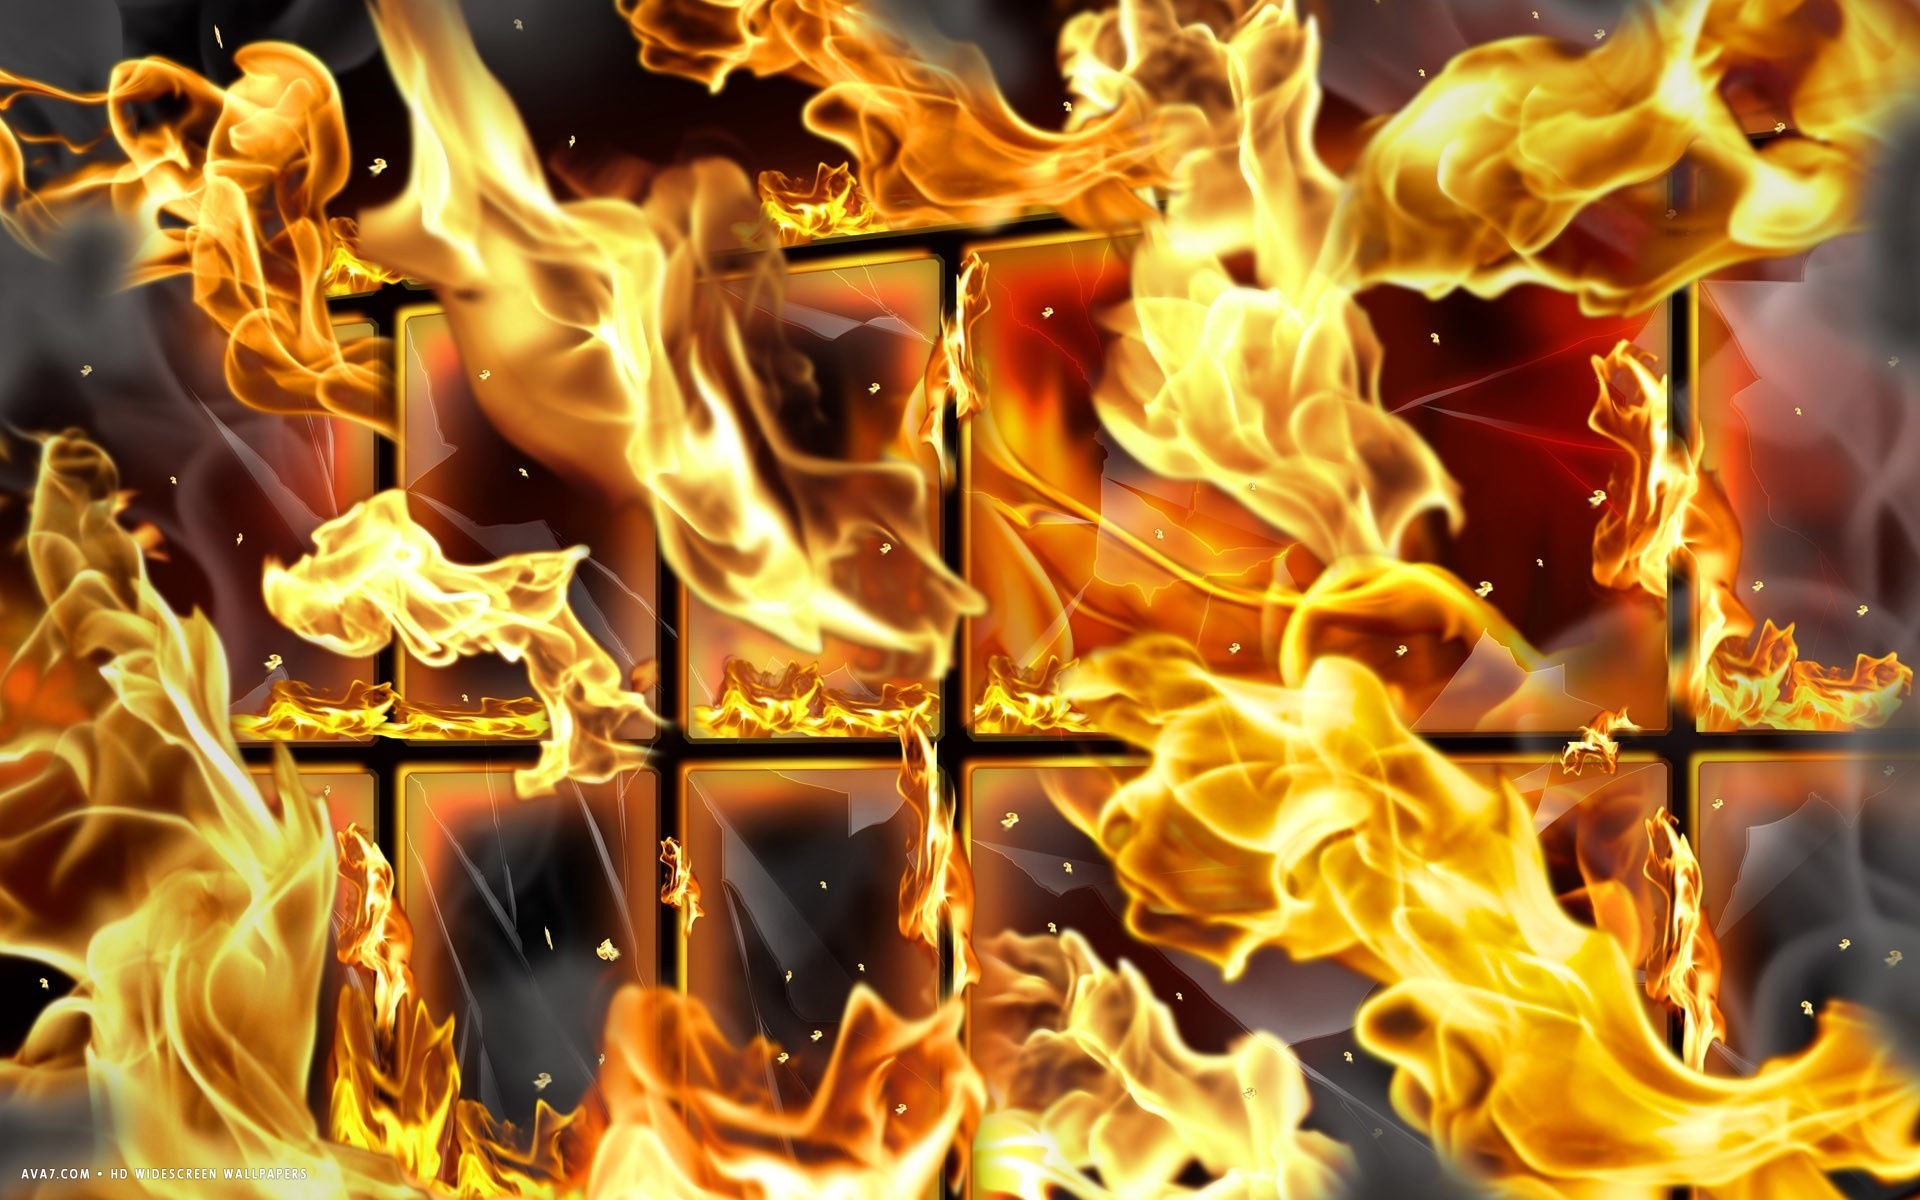 1920x1200 3d flames abstract grid cage window fire hd widescreen wallpaper